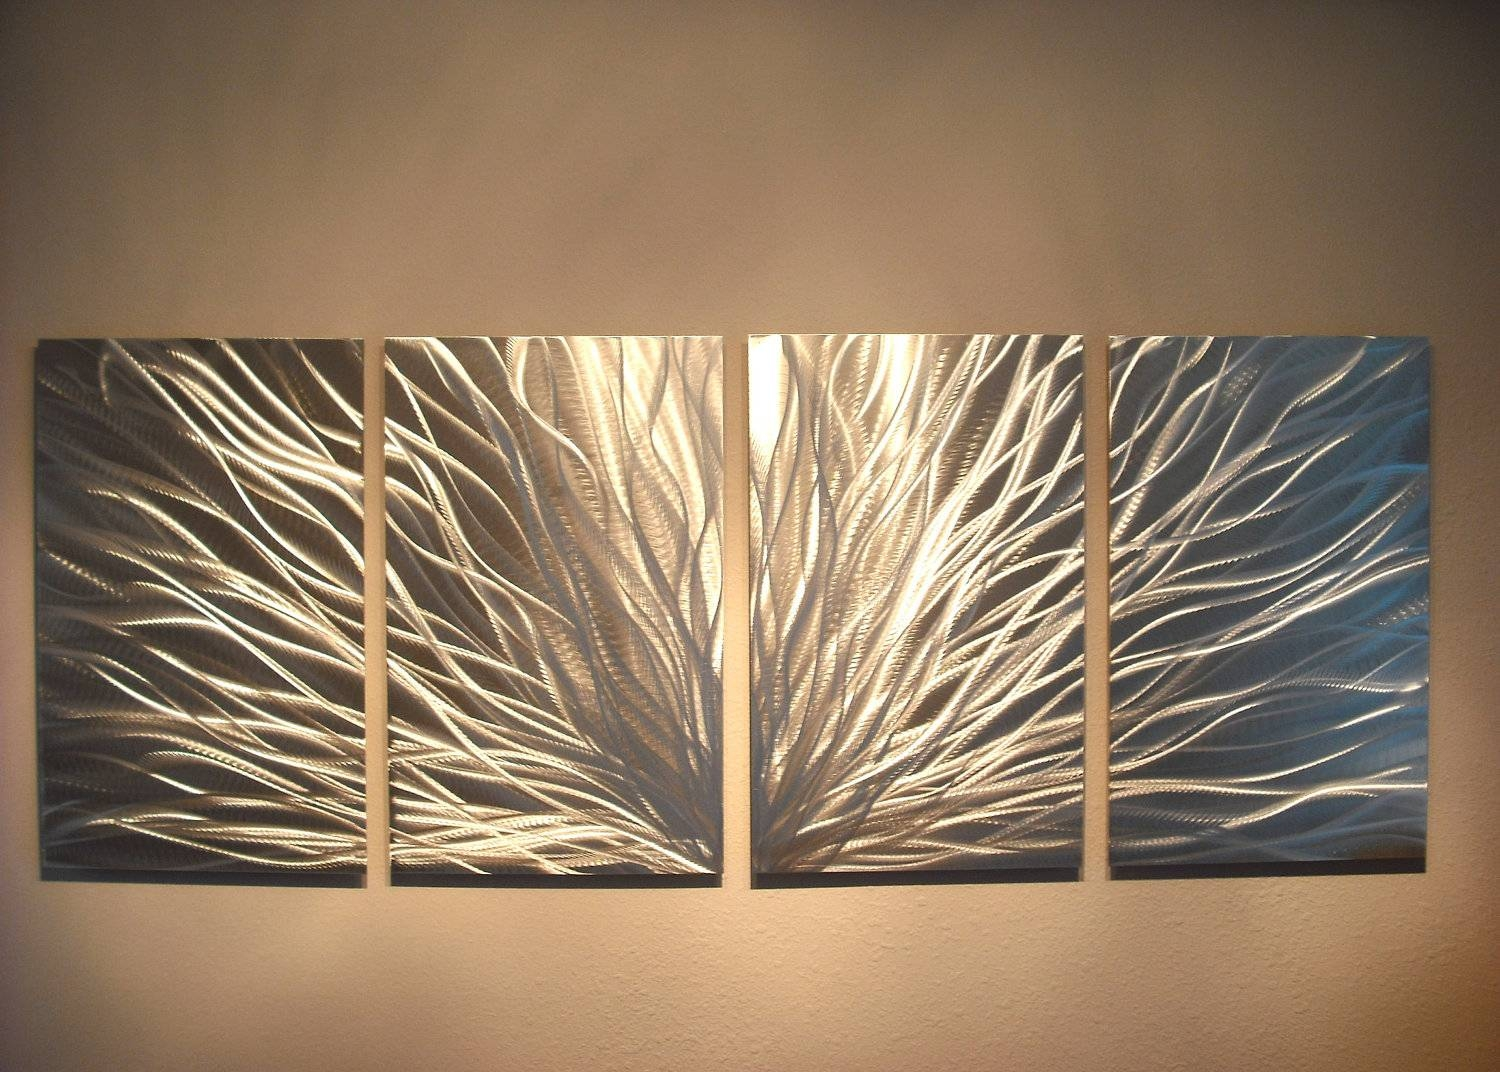 Radiance – Abstract Metal Wall Art Contemporary Modern Decor With Regard To 2018 Faux Metal Wall Art (Gallery 13 of 20)